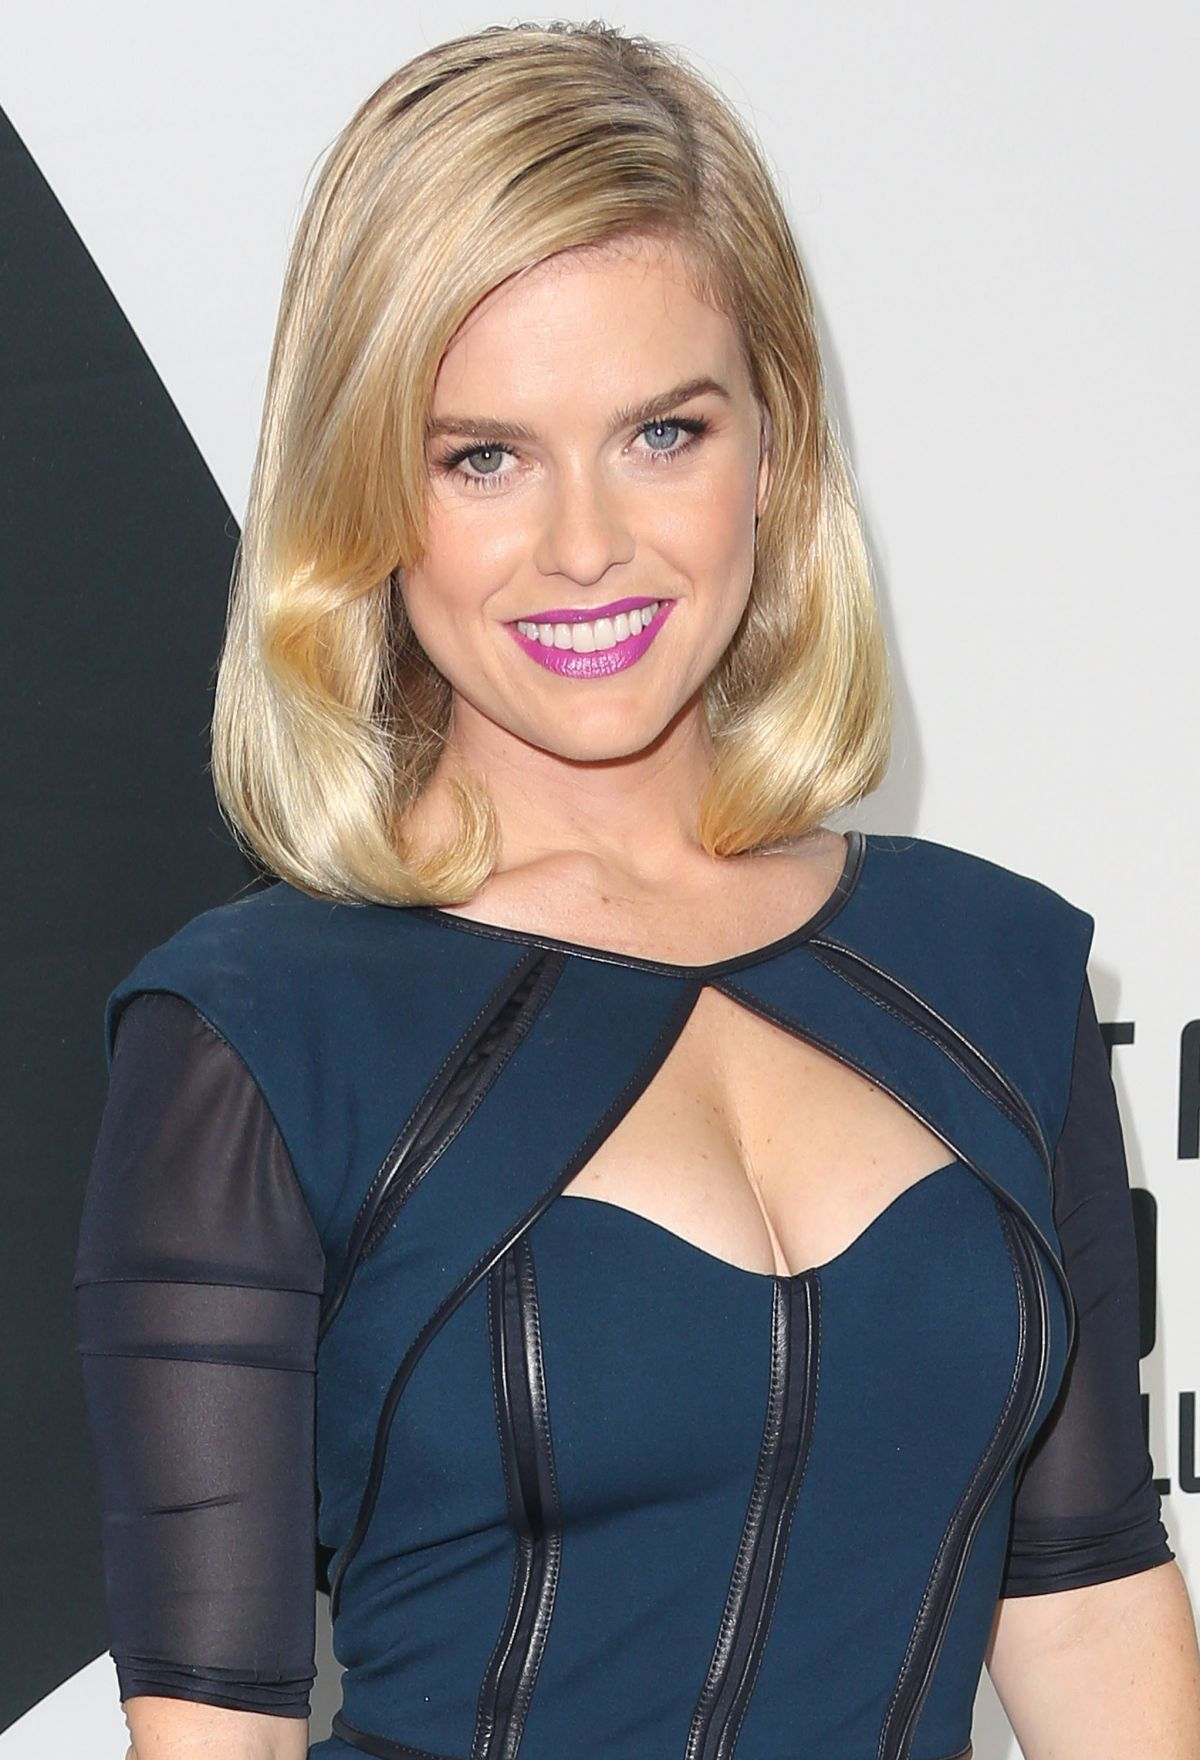 Alice Eve At Star Trek Into Darkness Blu-ray-DVD Release Event In LA